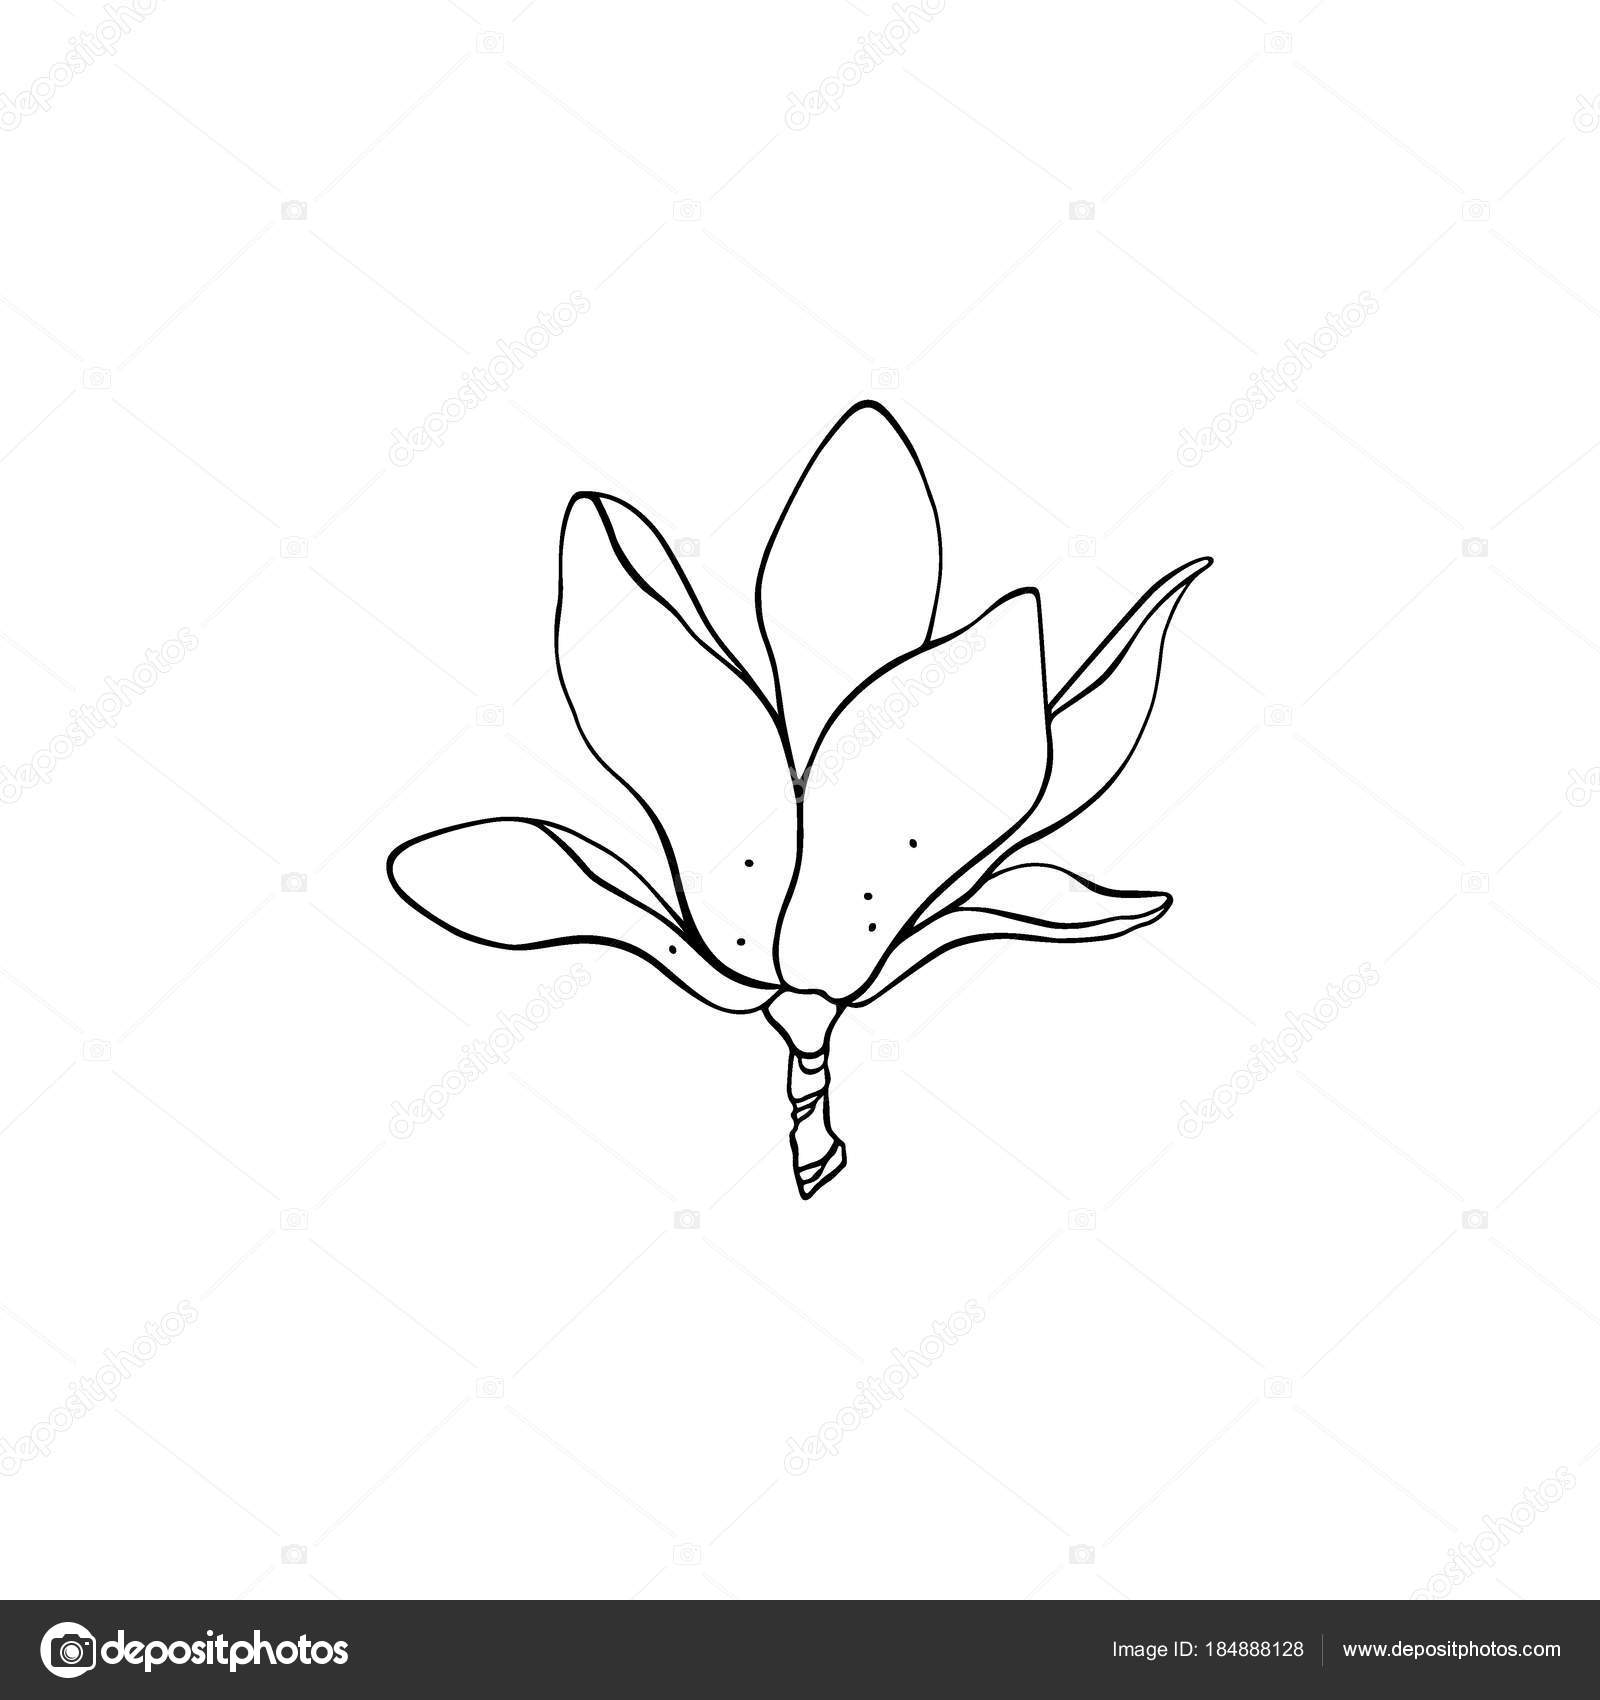 Hand drawn magnolia stock vector ezhevica 184888128 vector illustration of hand drawn magnolia flower beautiful floral design elements ink drawing logo template vector by ezhevica maxwellsz